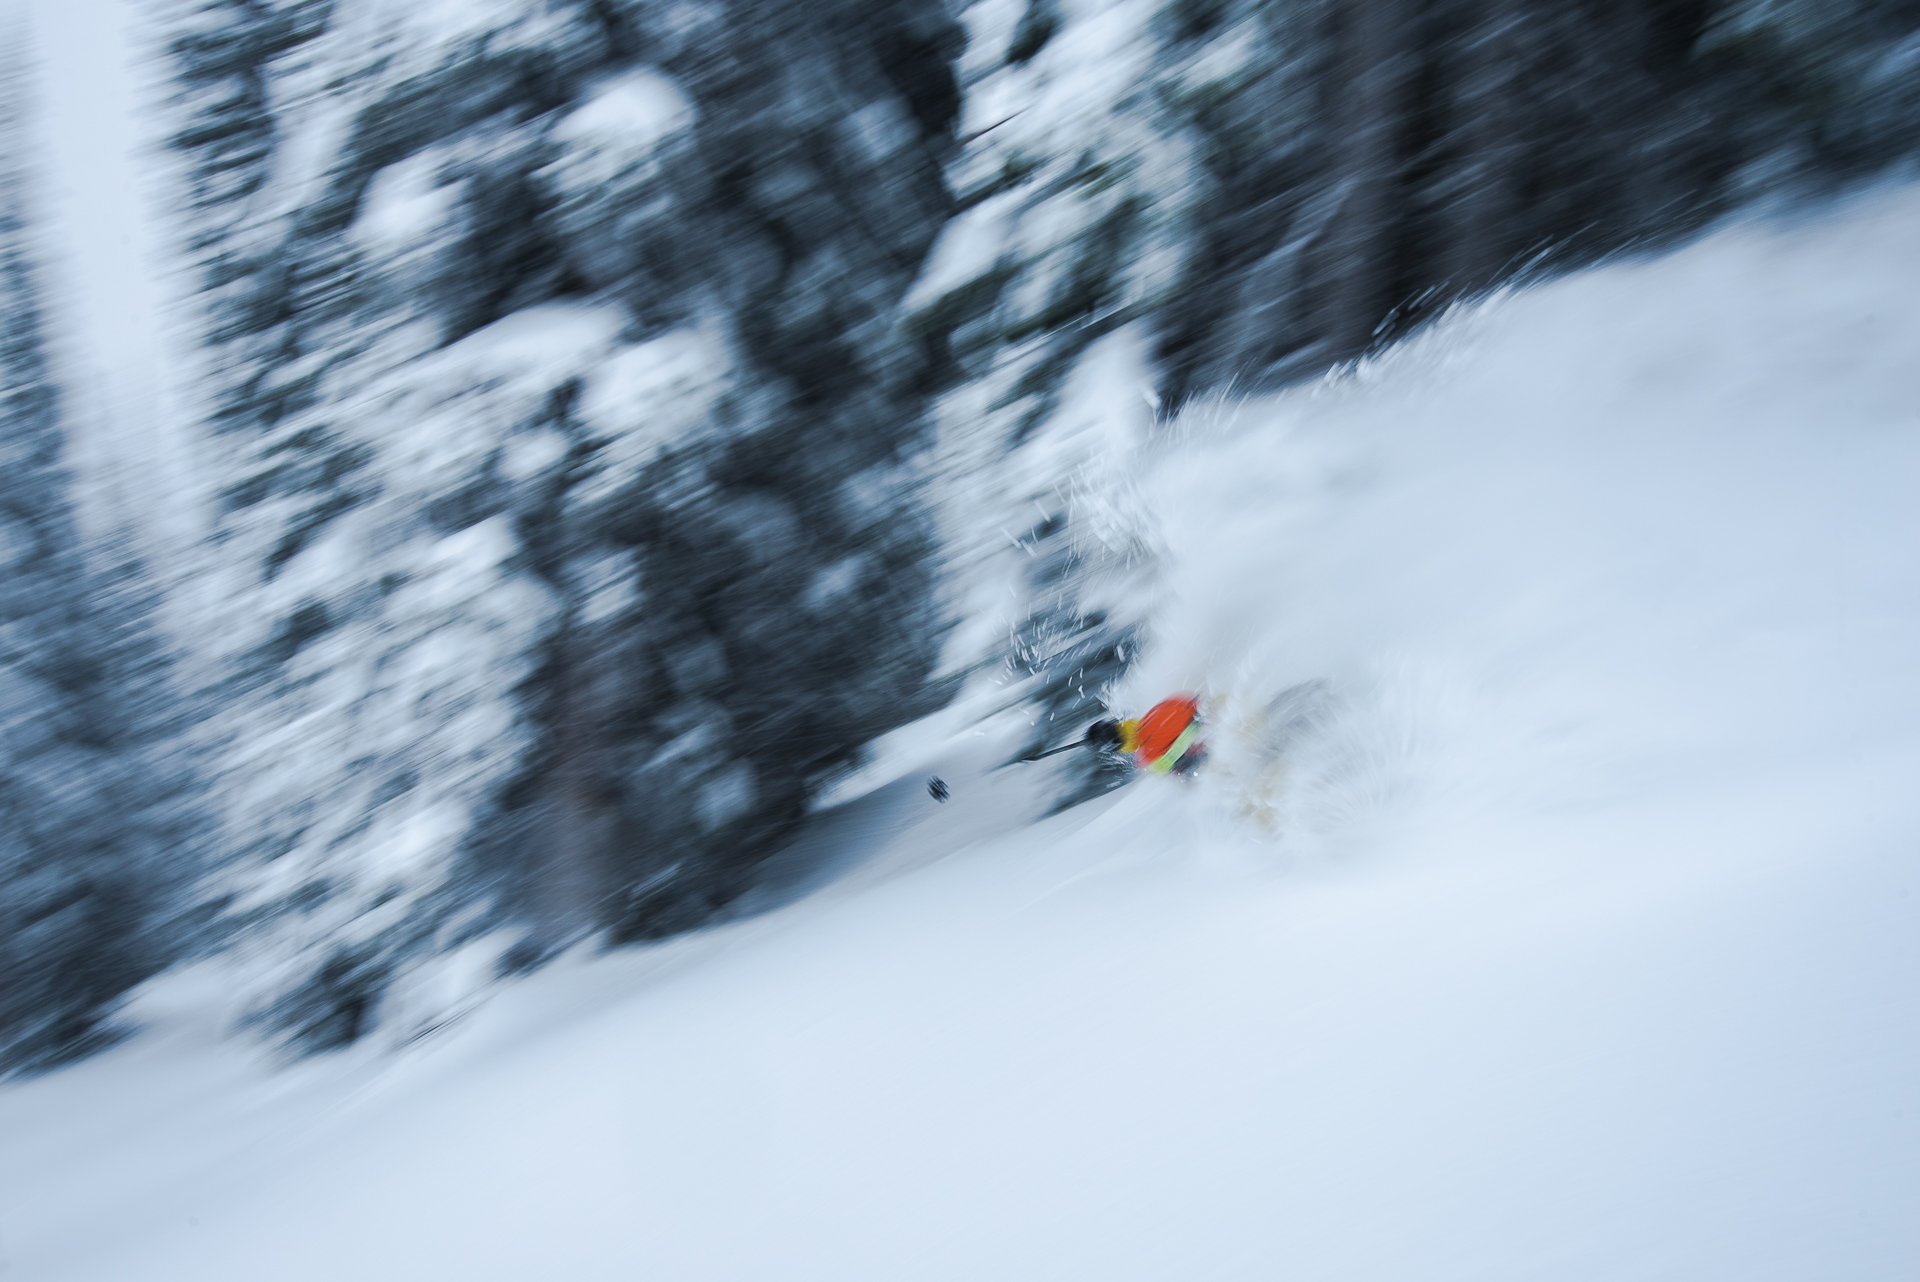 PHOTO: Sean Cochrane, Revelstoke Mountain, BC, by Bruno Long